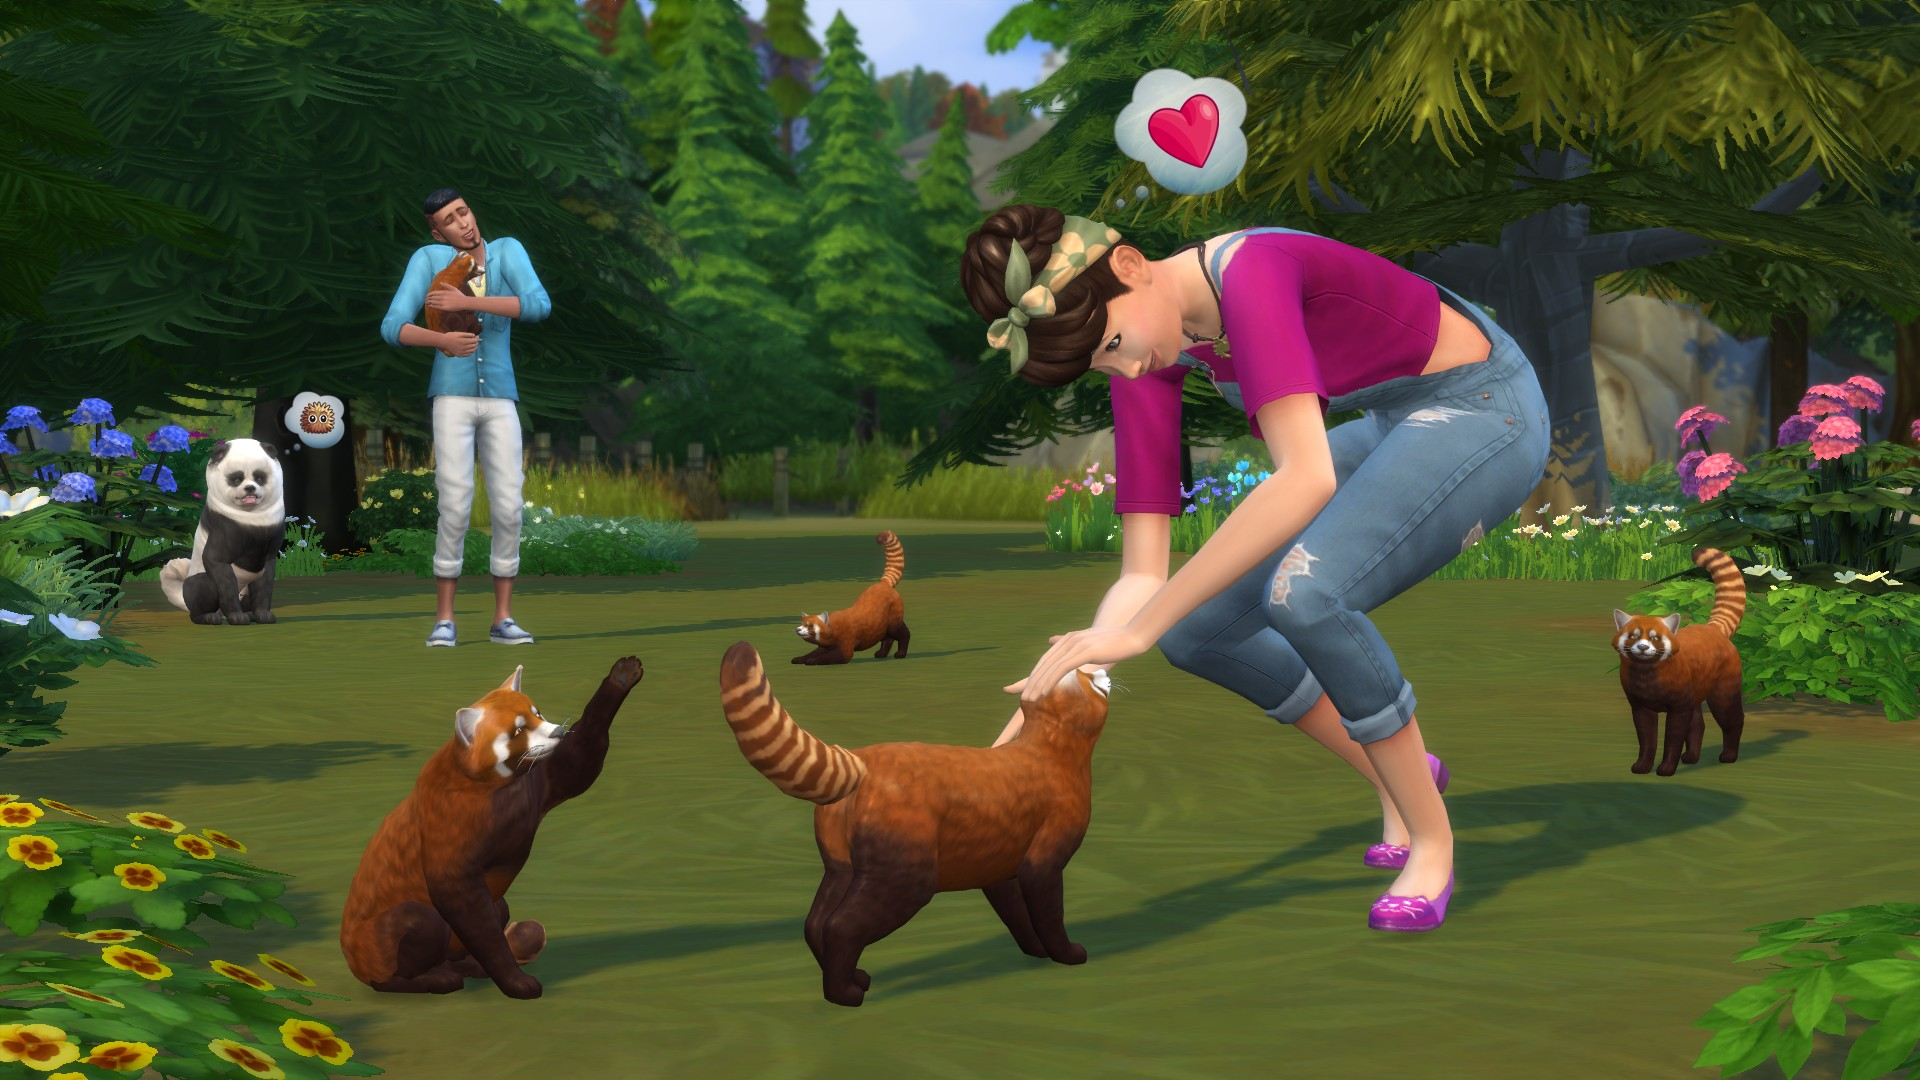 The Sims 4 Cats Dogs Arriving On Xbox One July 31 Evil Bunny 3k